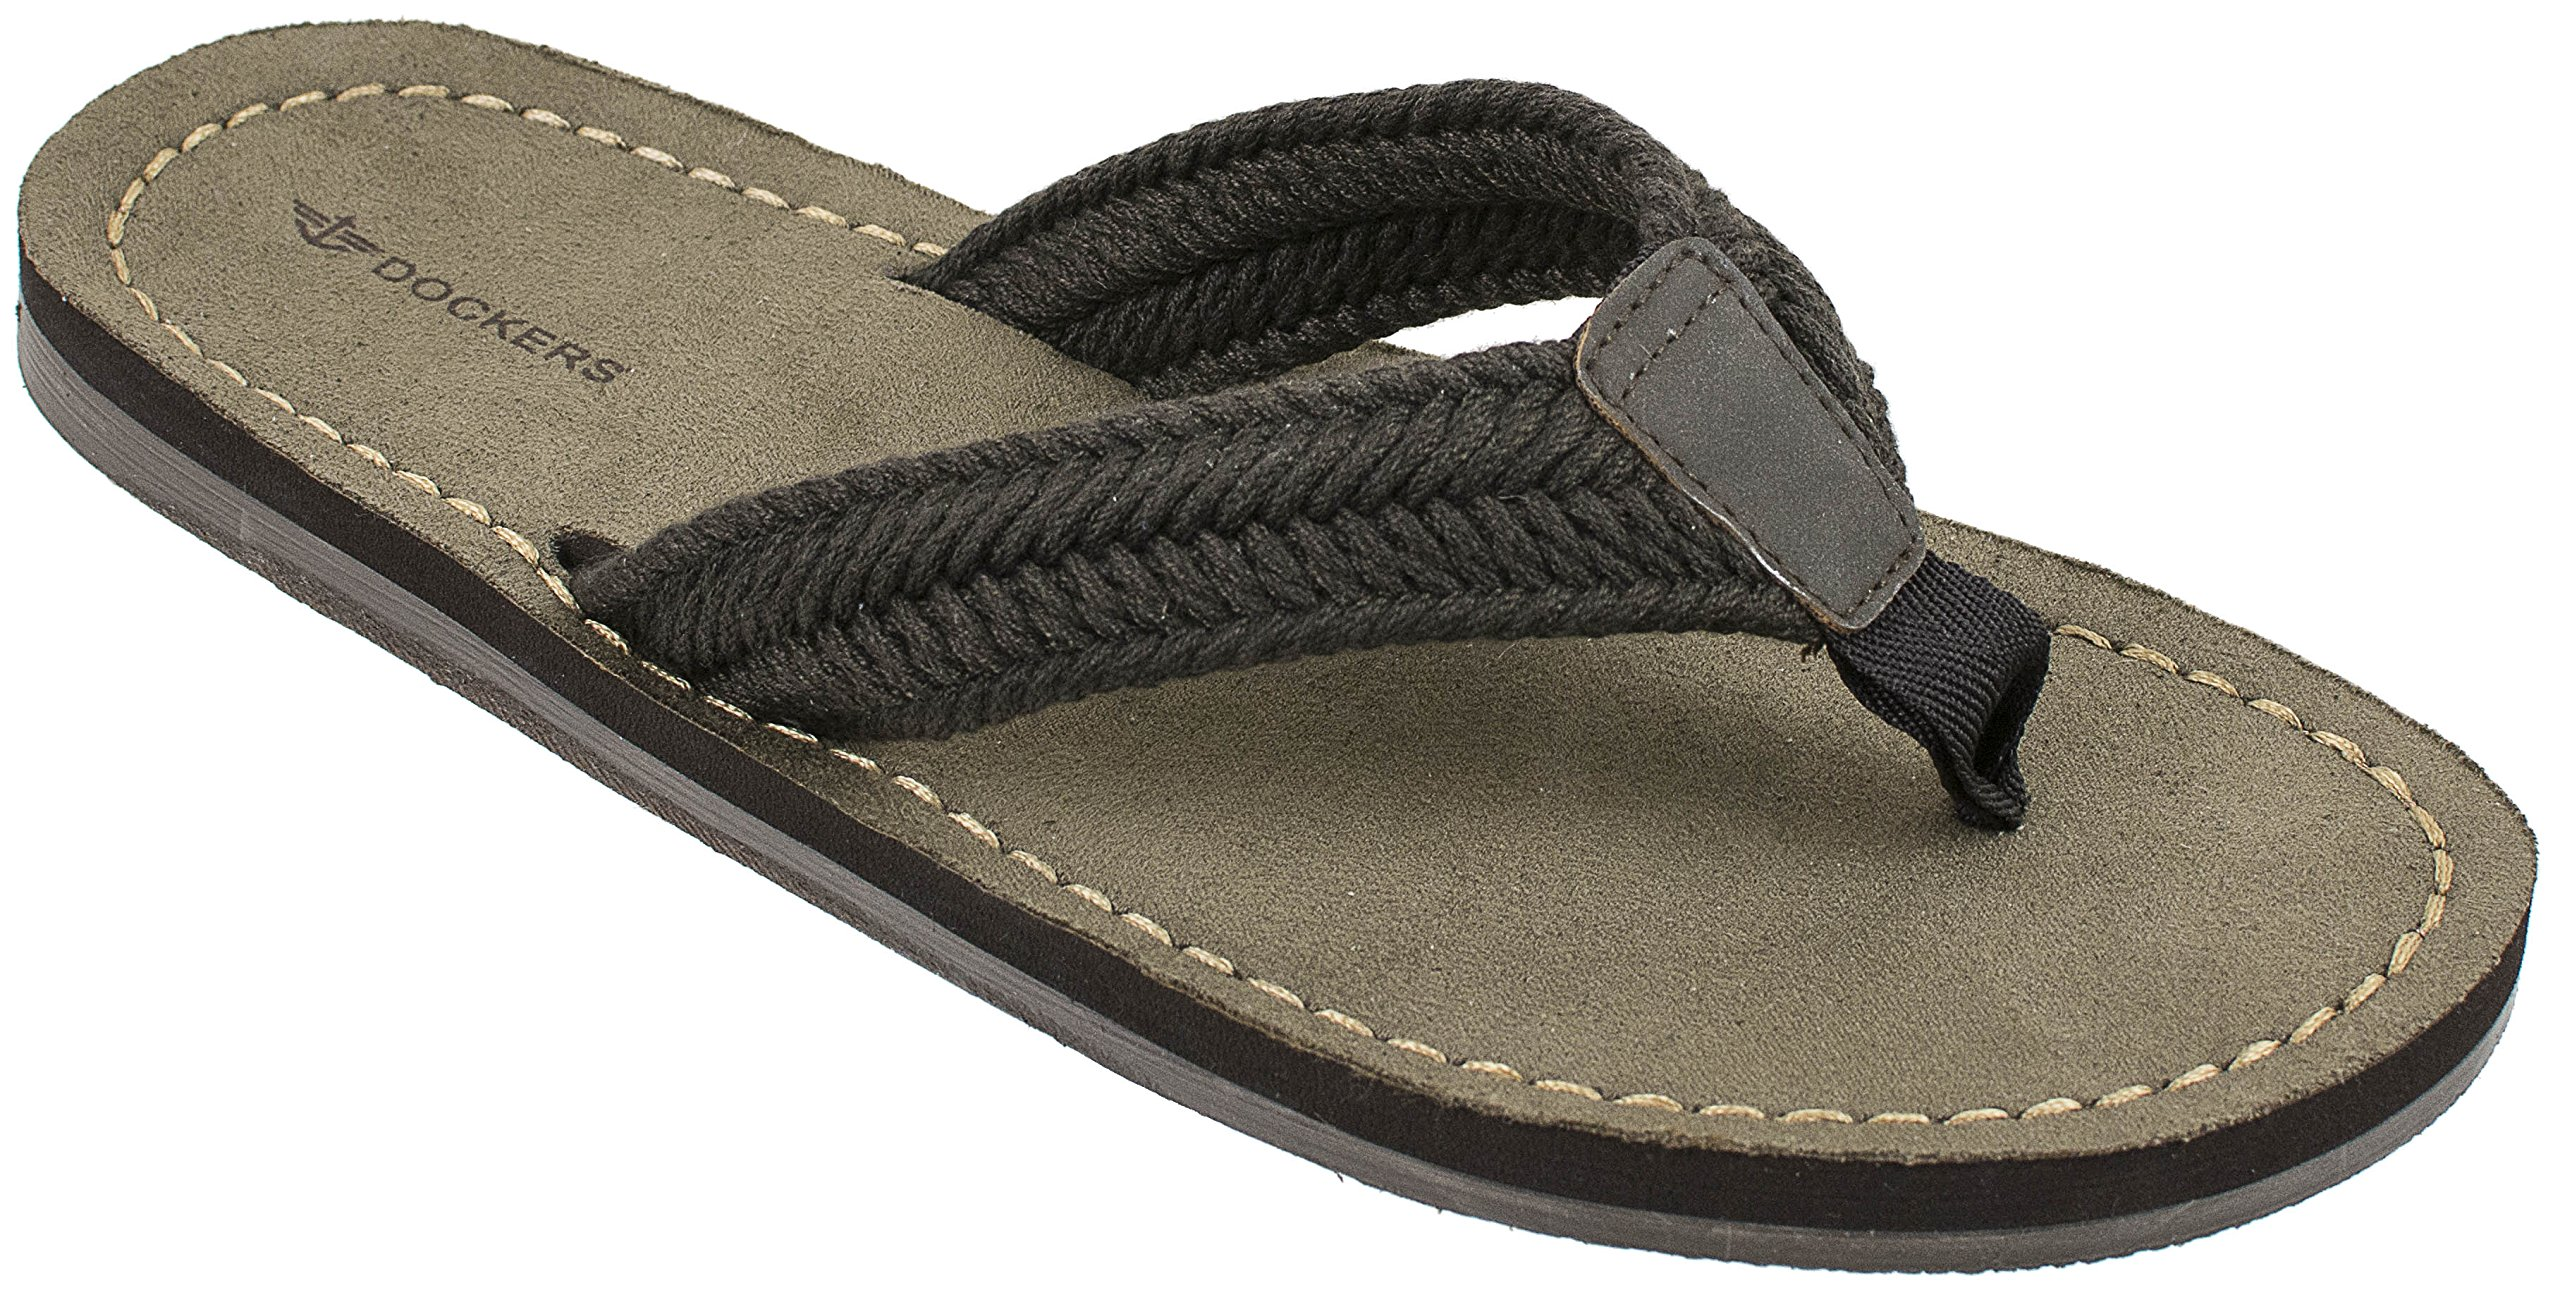 Dockers Men's Nicholas Casual Sandal with Webbing Upper Flip Flop, Brown, XX-Large/13 M US